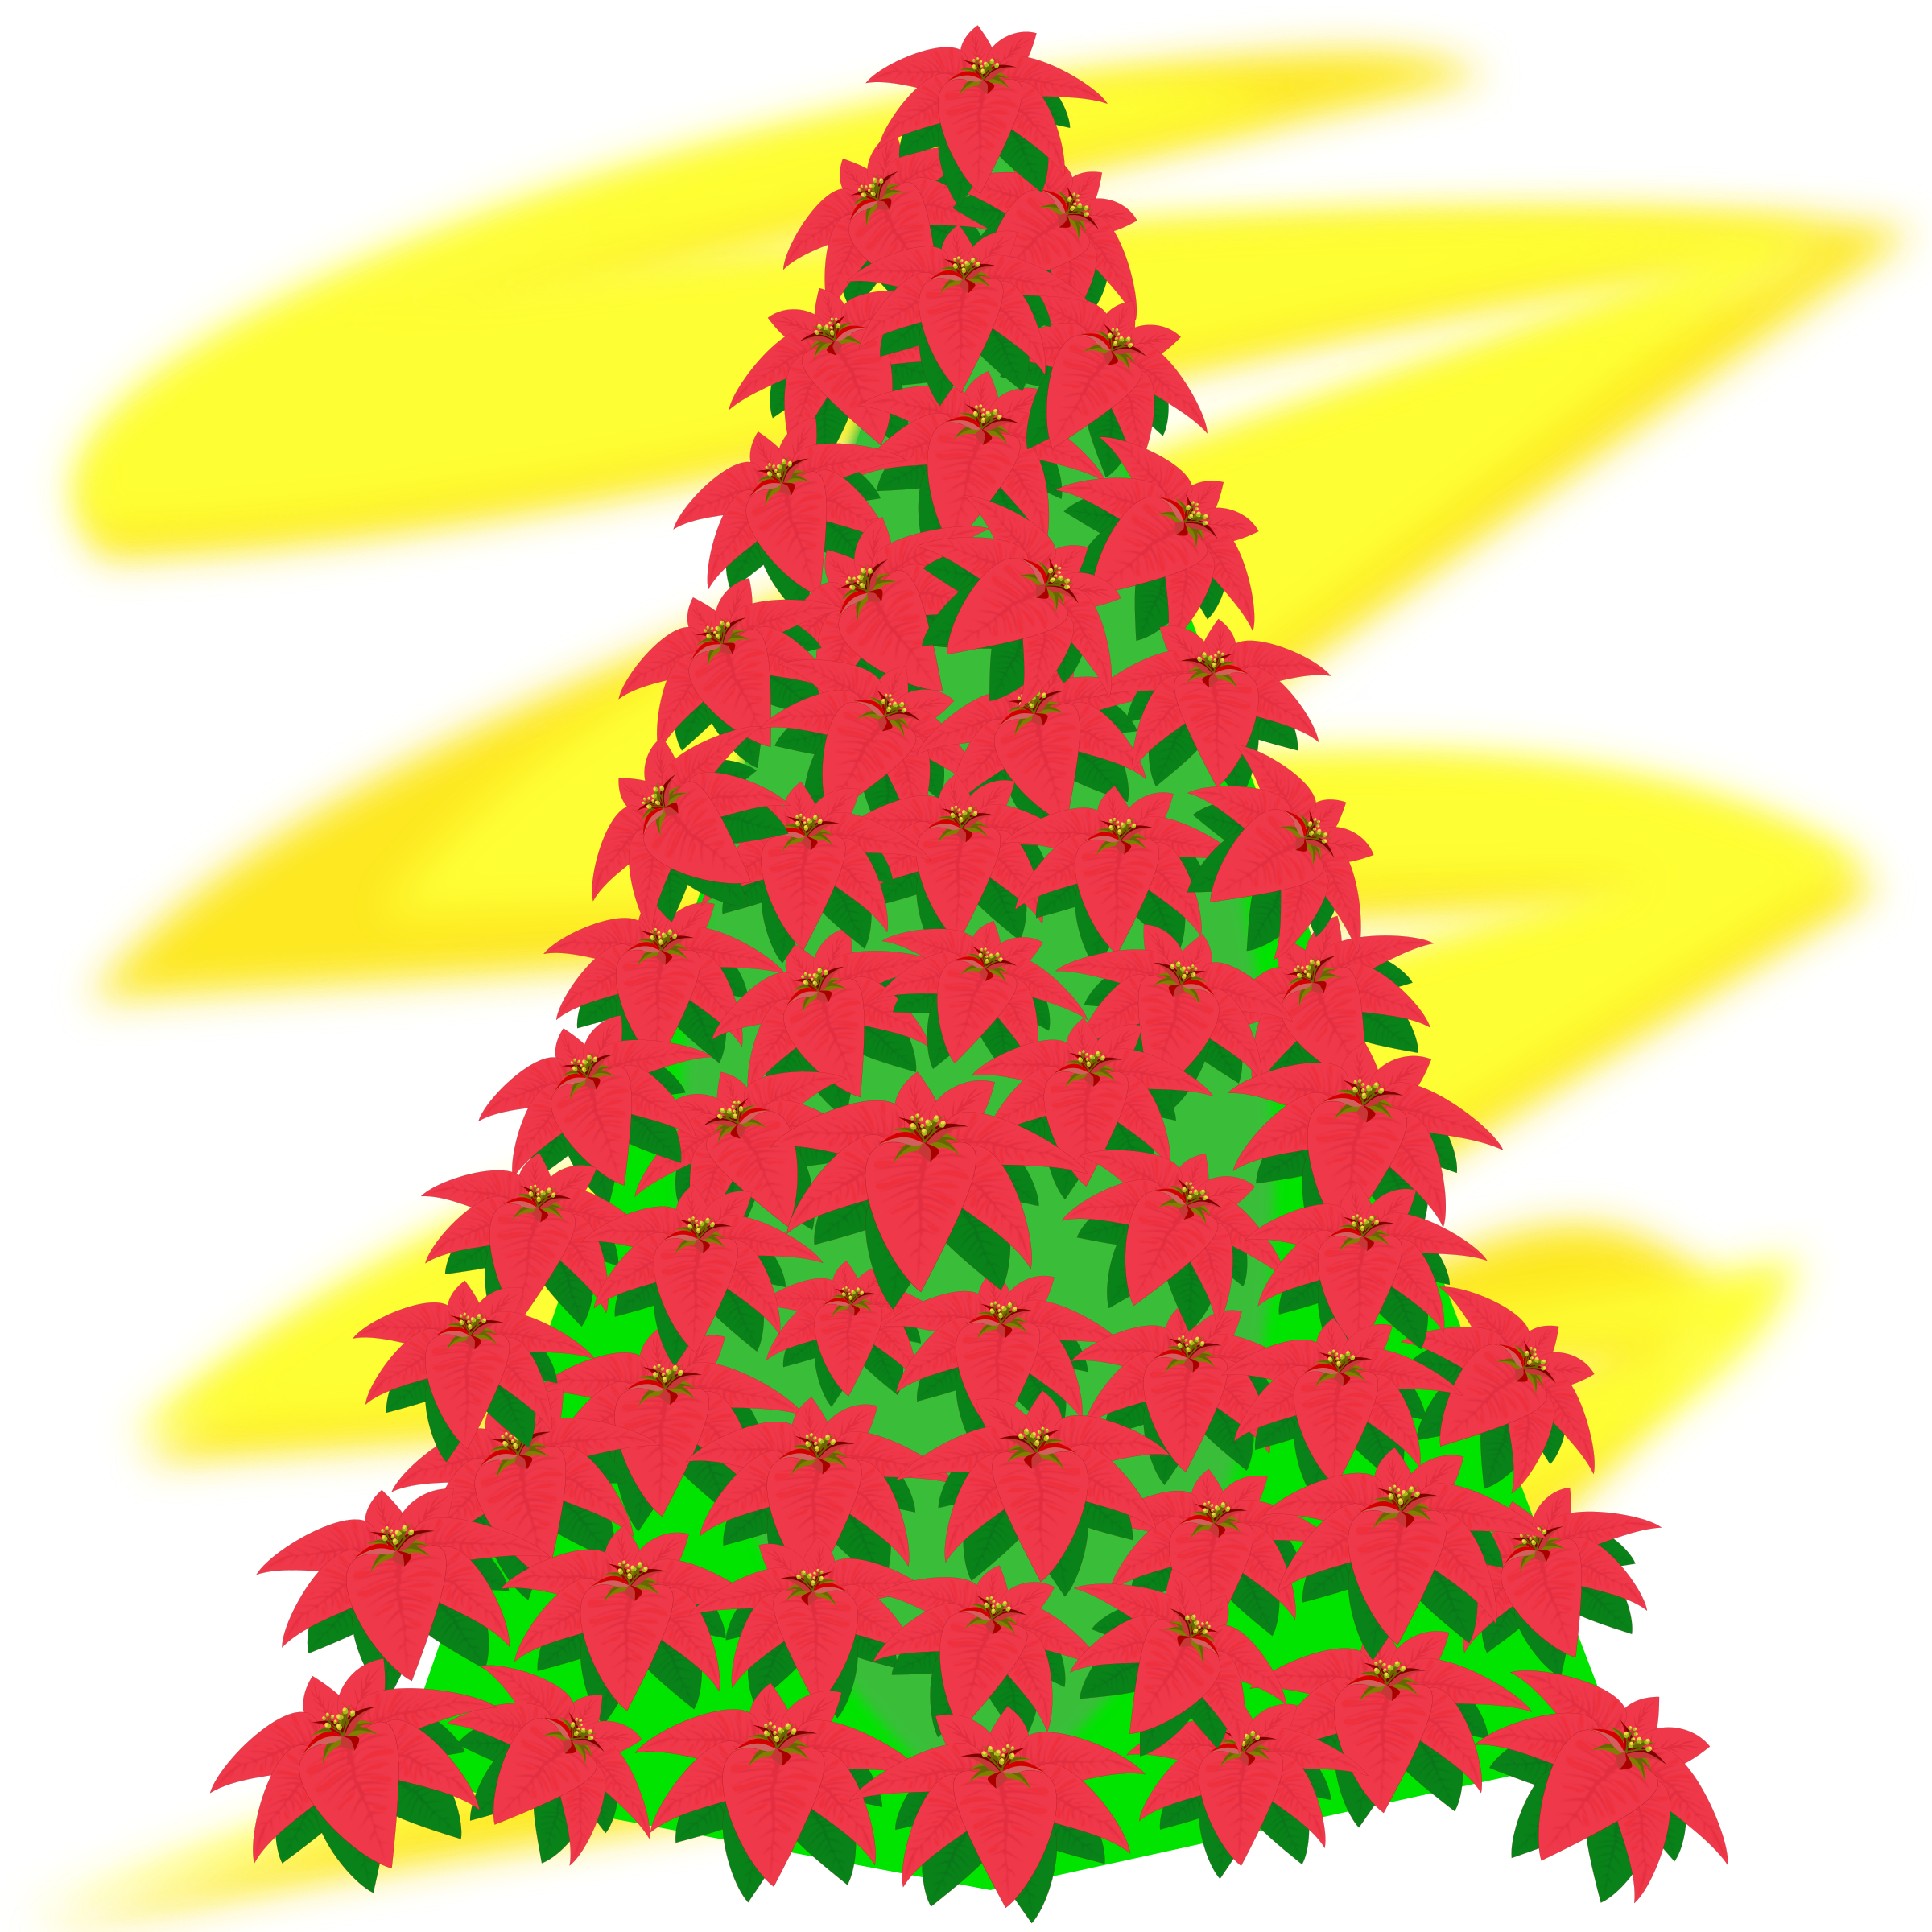 free christmas tree clipart red silhouette 20 free ... (2400 x 2400 Pixel)